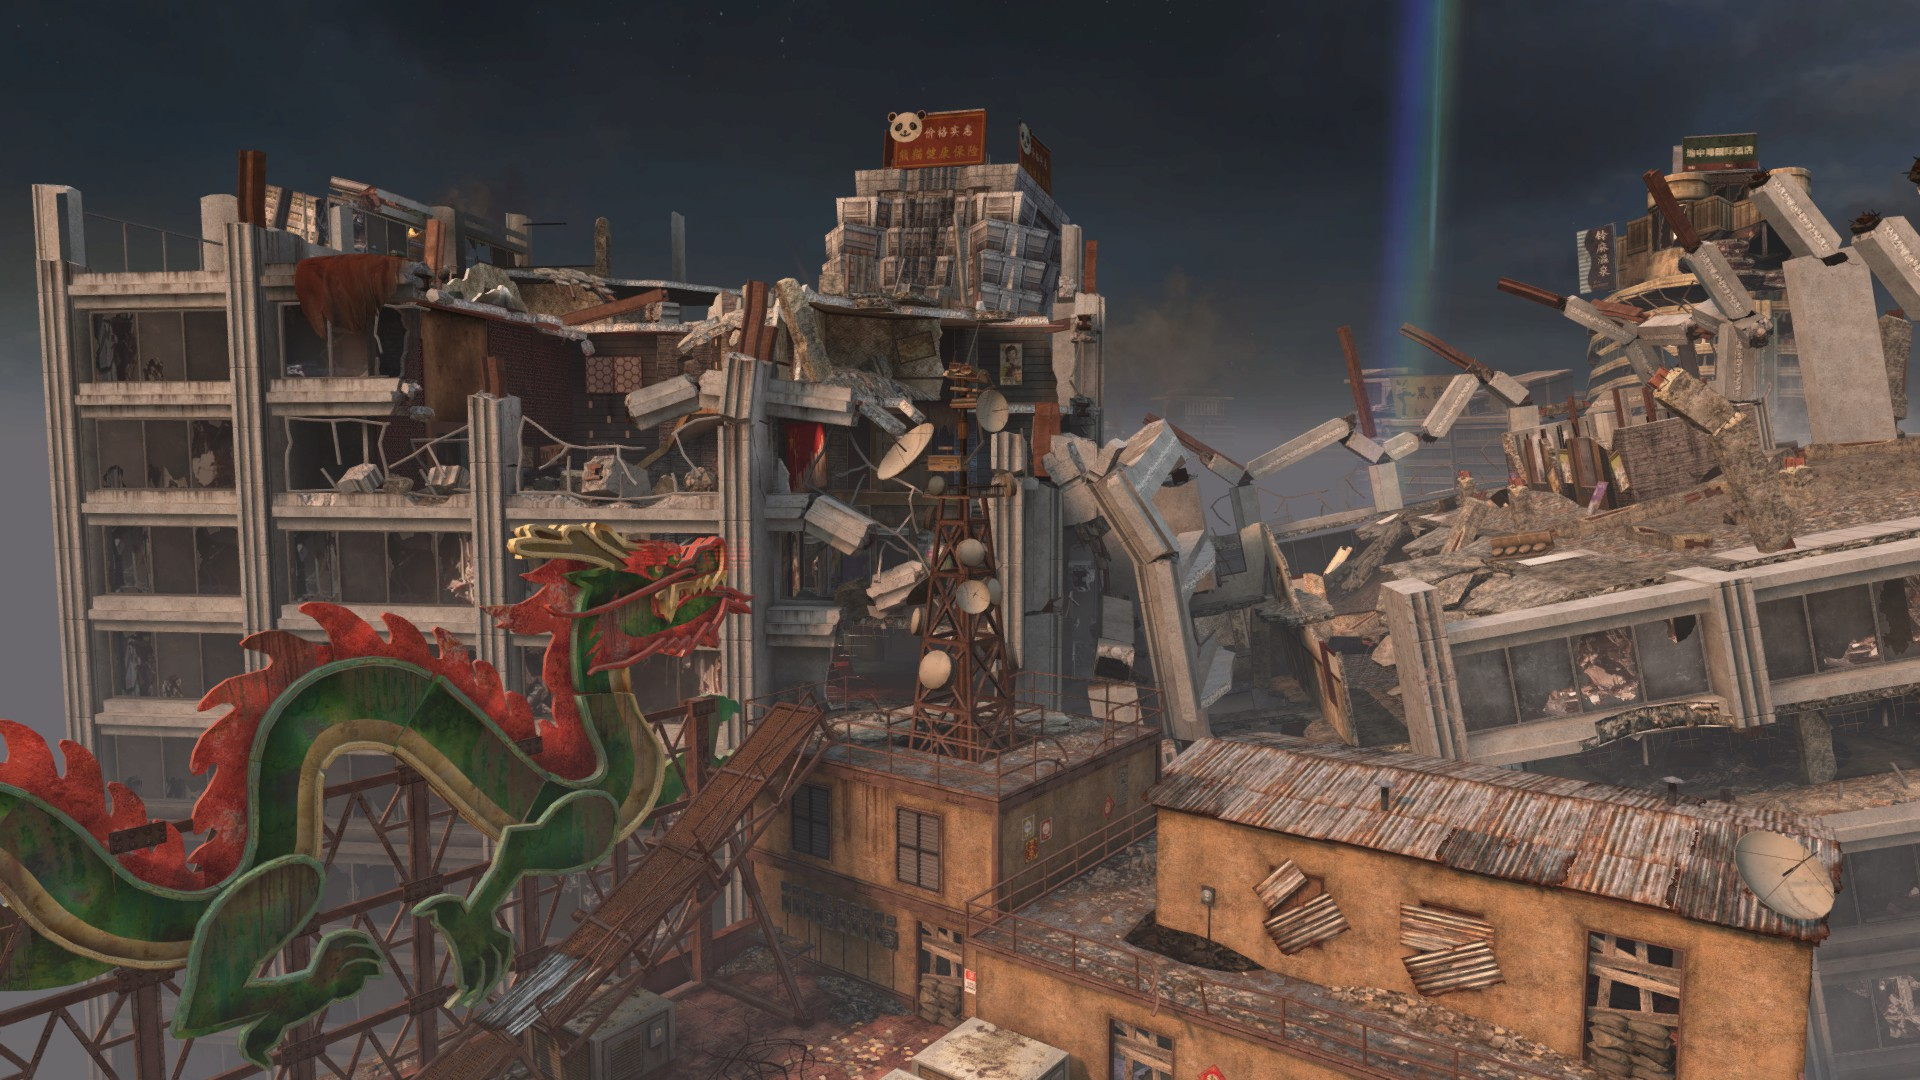 black ops 2 tranzit map with Bo2 Zombies Wallpaper on 8334134445 as well The Bus R255 besides Call Duty Black Ops 3 Eclipse Dlc Xbox Launches Today Pc moreover 157690 Map Of Origins additionally Tax Day 2015 Irs Tax Return Memes Funny Pictures.